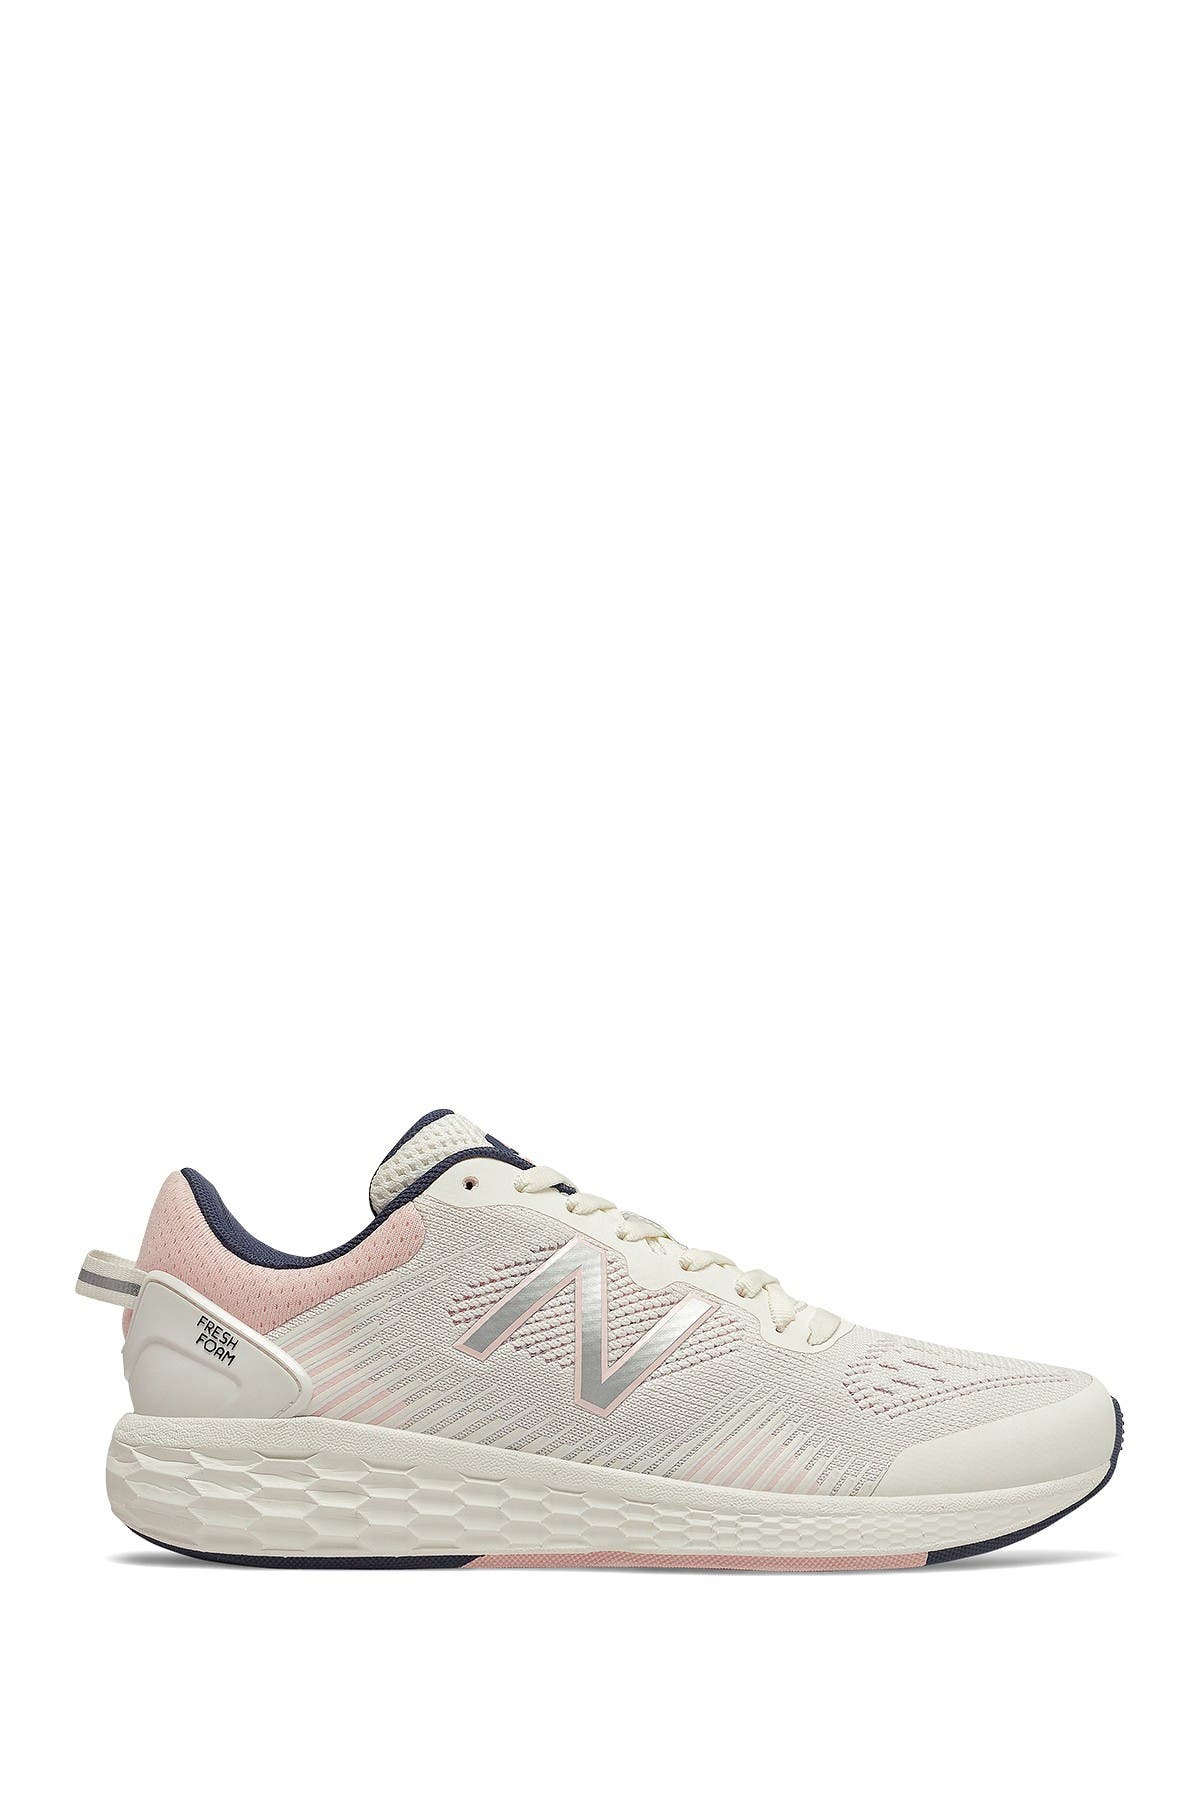 Image of New Balance XT Trainer Running Sneaker - Wide Width Available